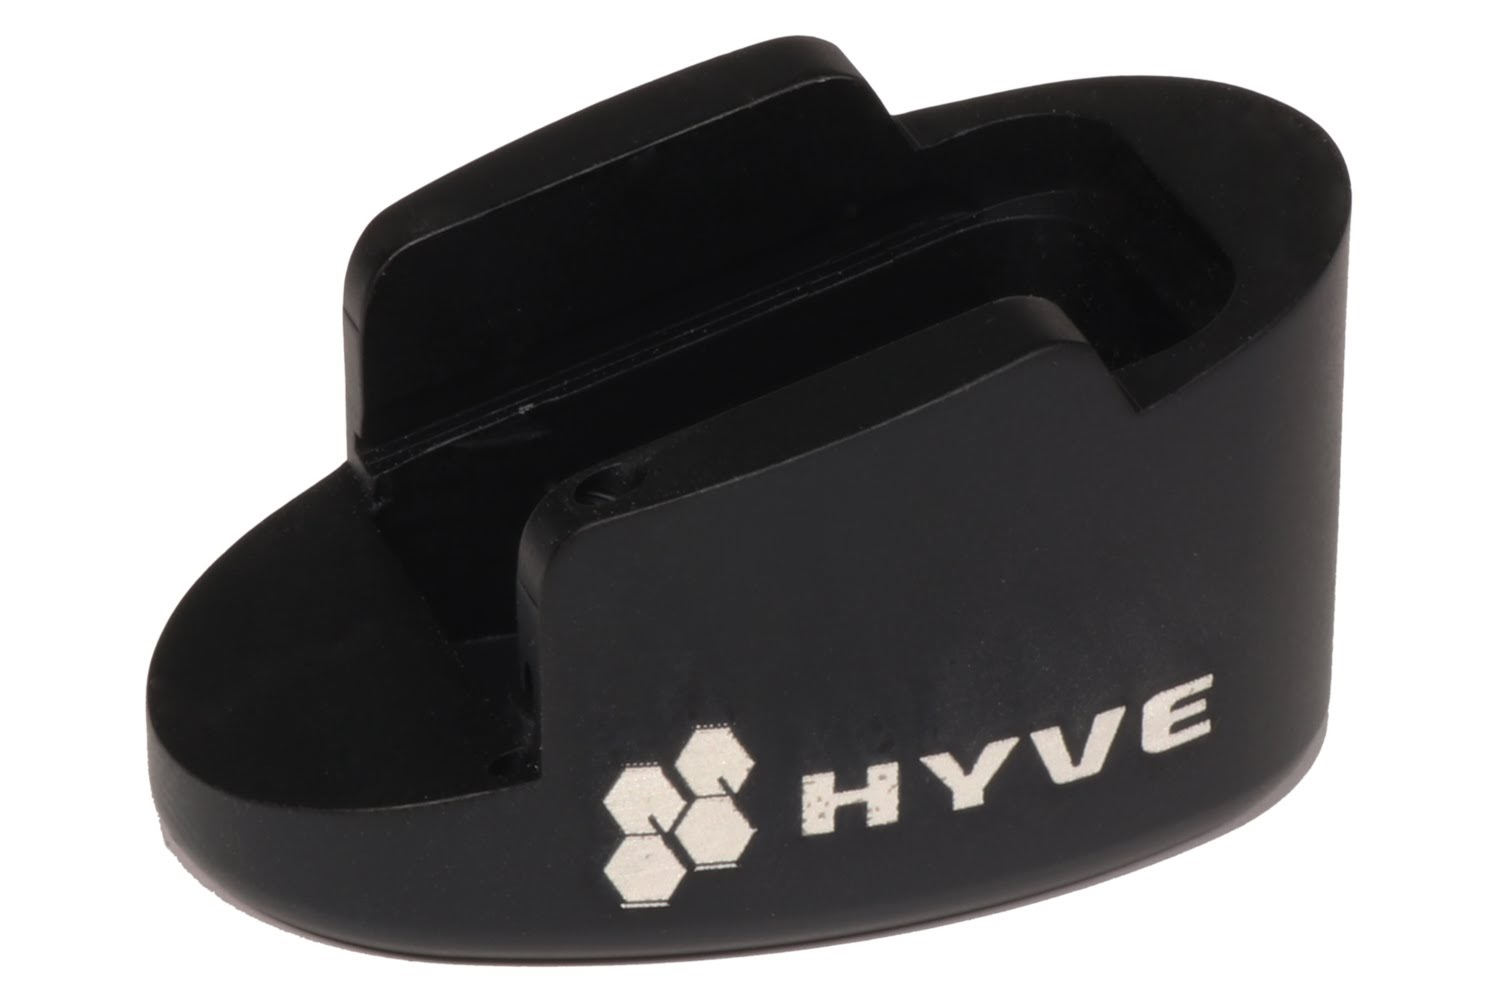 HYVE Technologies Sig Sauer P320 Compact Magazine Extension Base Pad